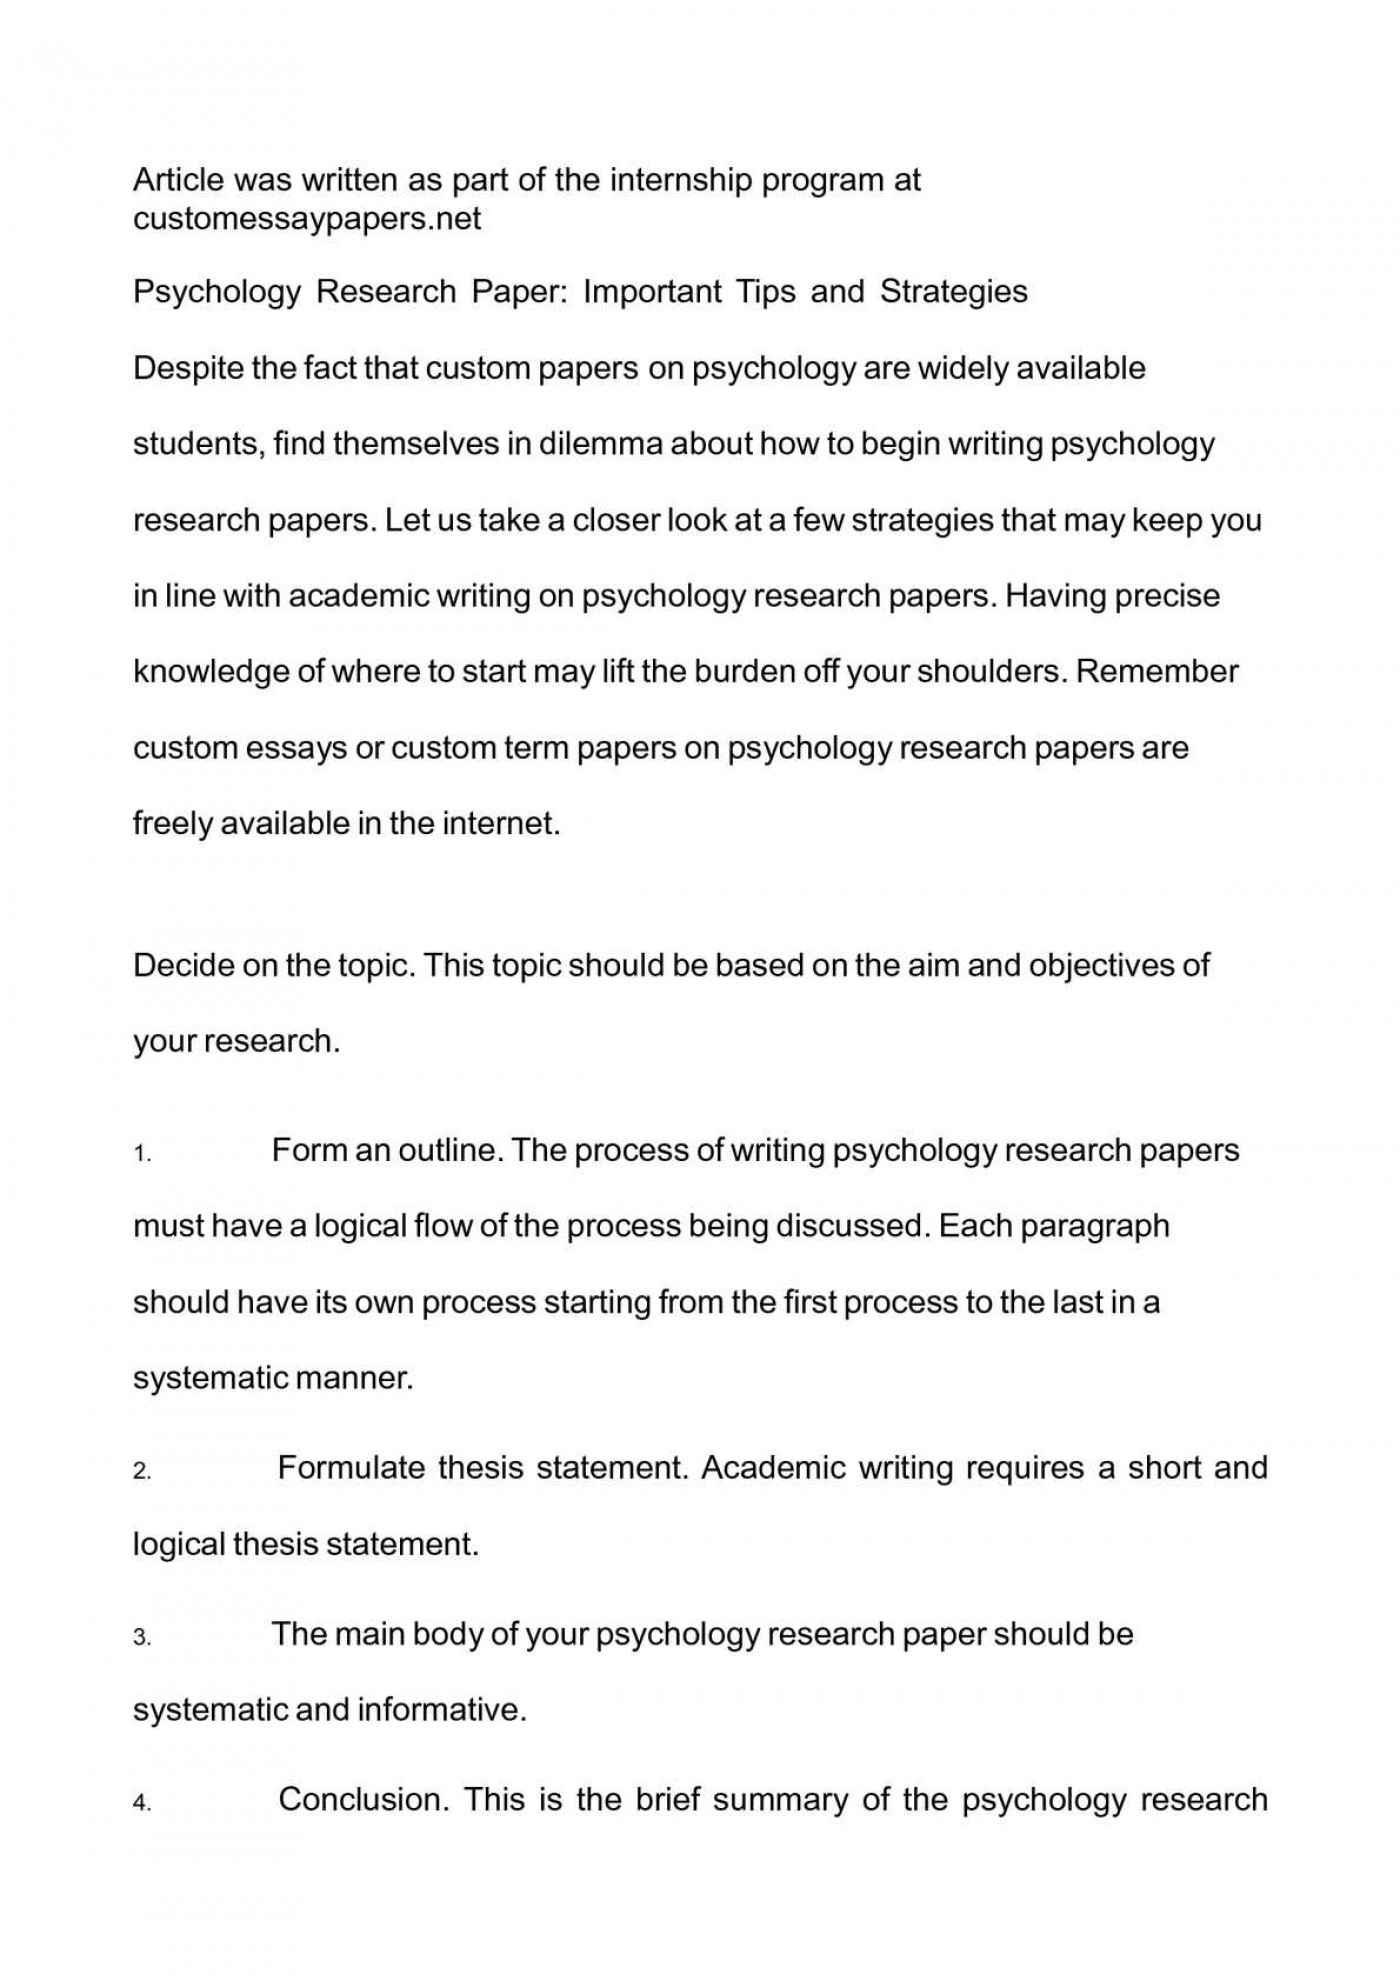 019 Psychology Research Paper Topics Striking For High School Students Reddit 1400